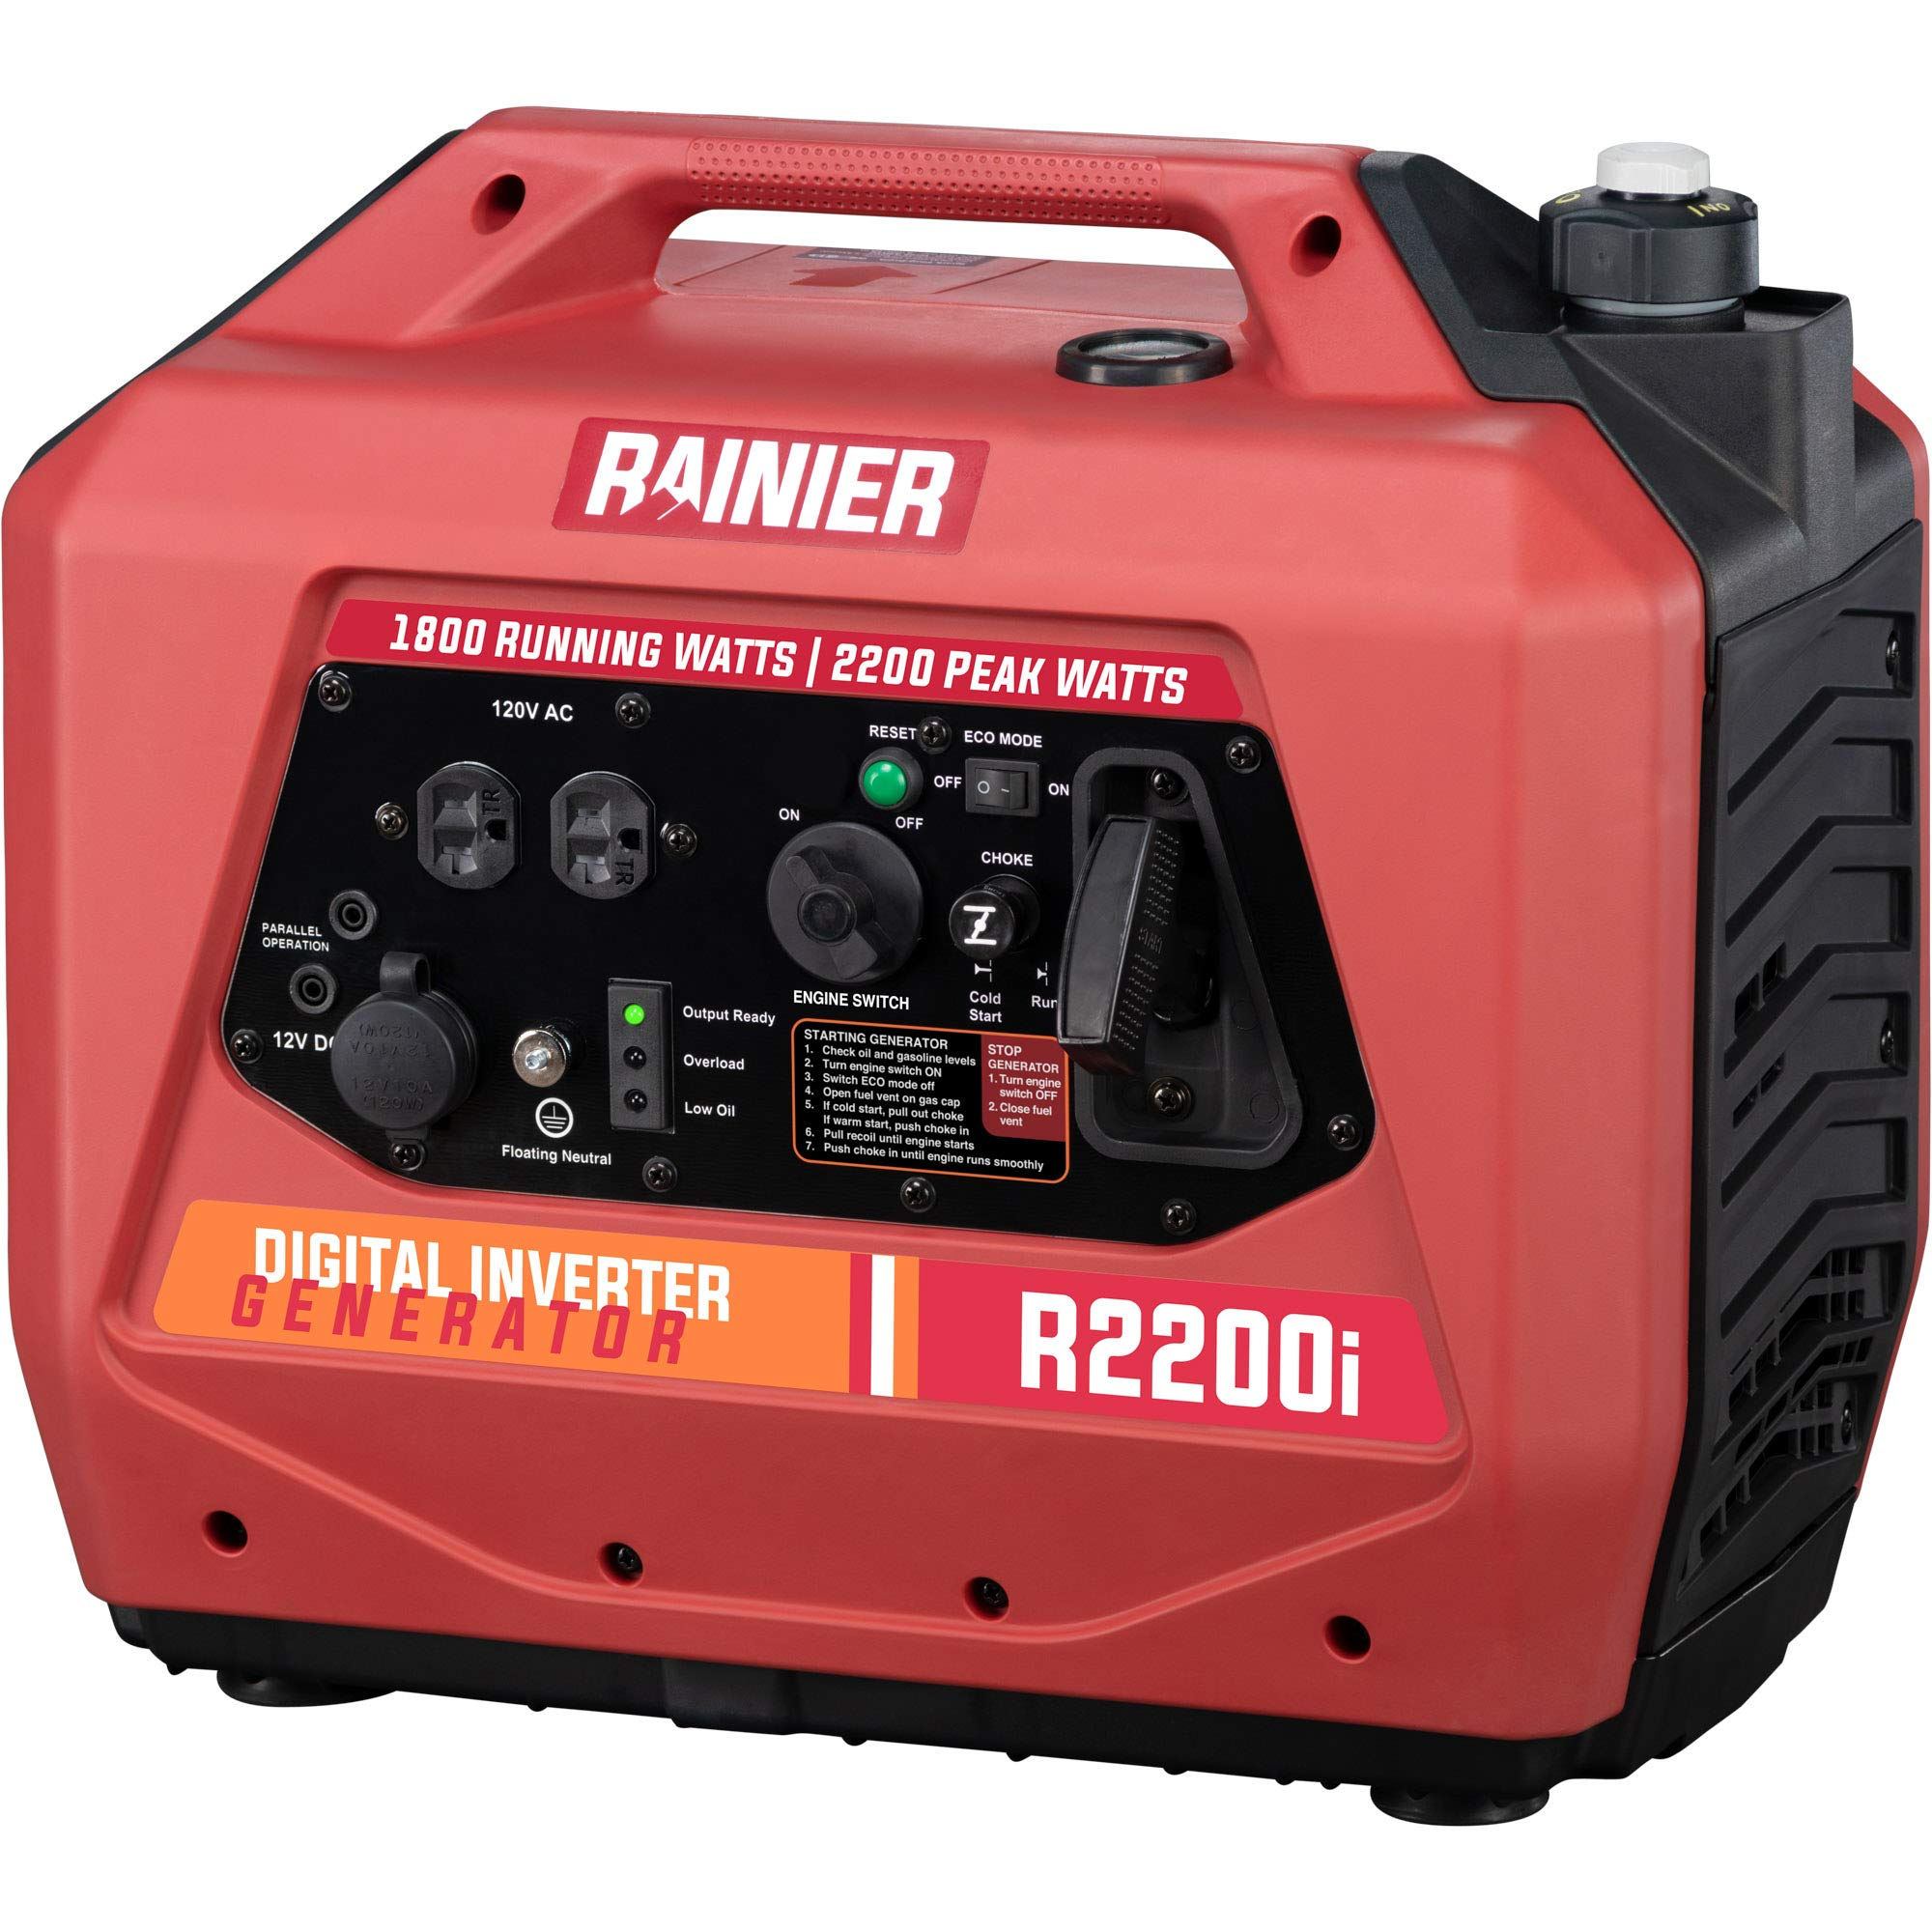 Rainier R2200i Super Quiet Portable Power Station Outdoor Inverter Generator – 1800 Running &